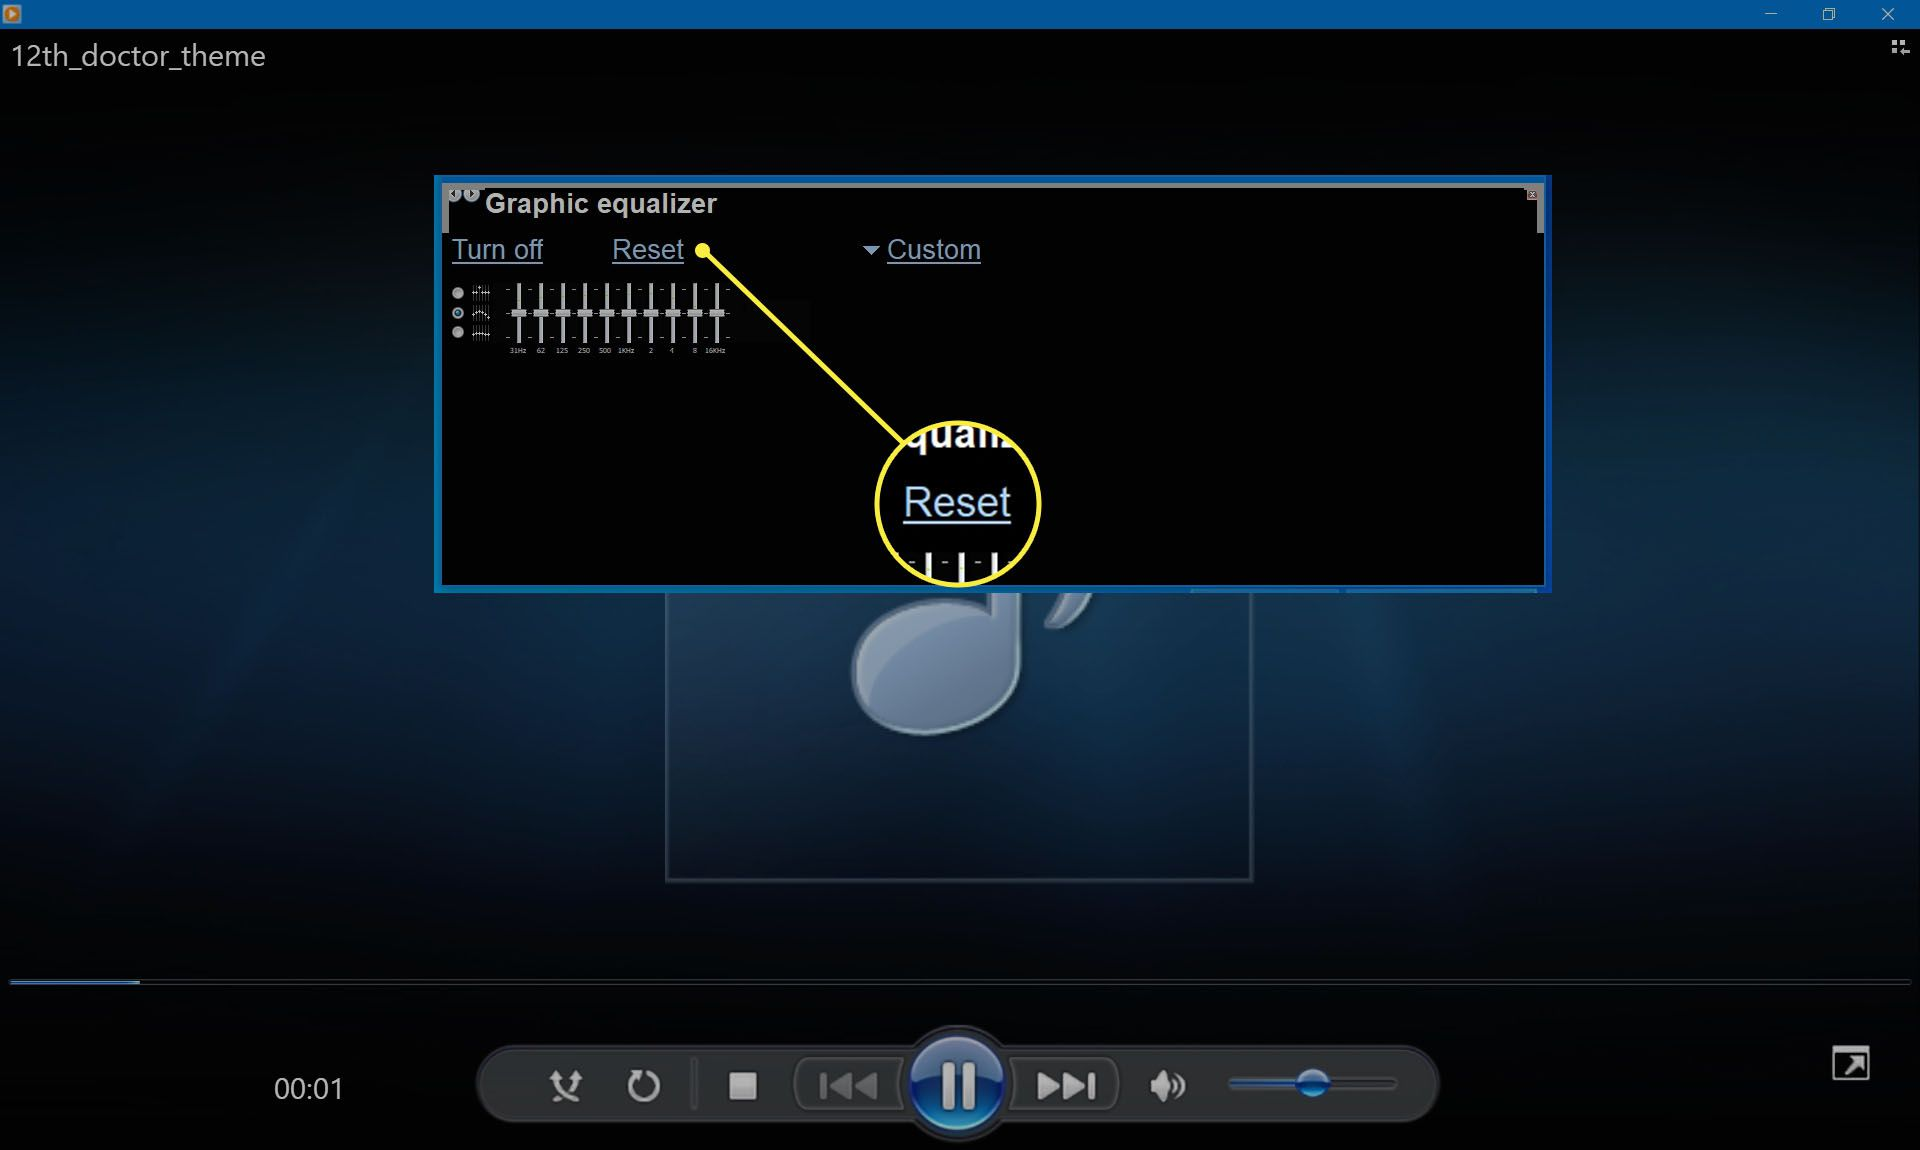 Selecting Reset to reset equalizer sliders in Windows Media Player.